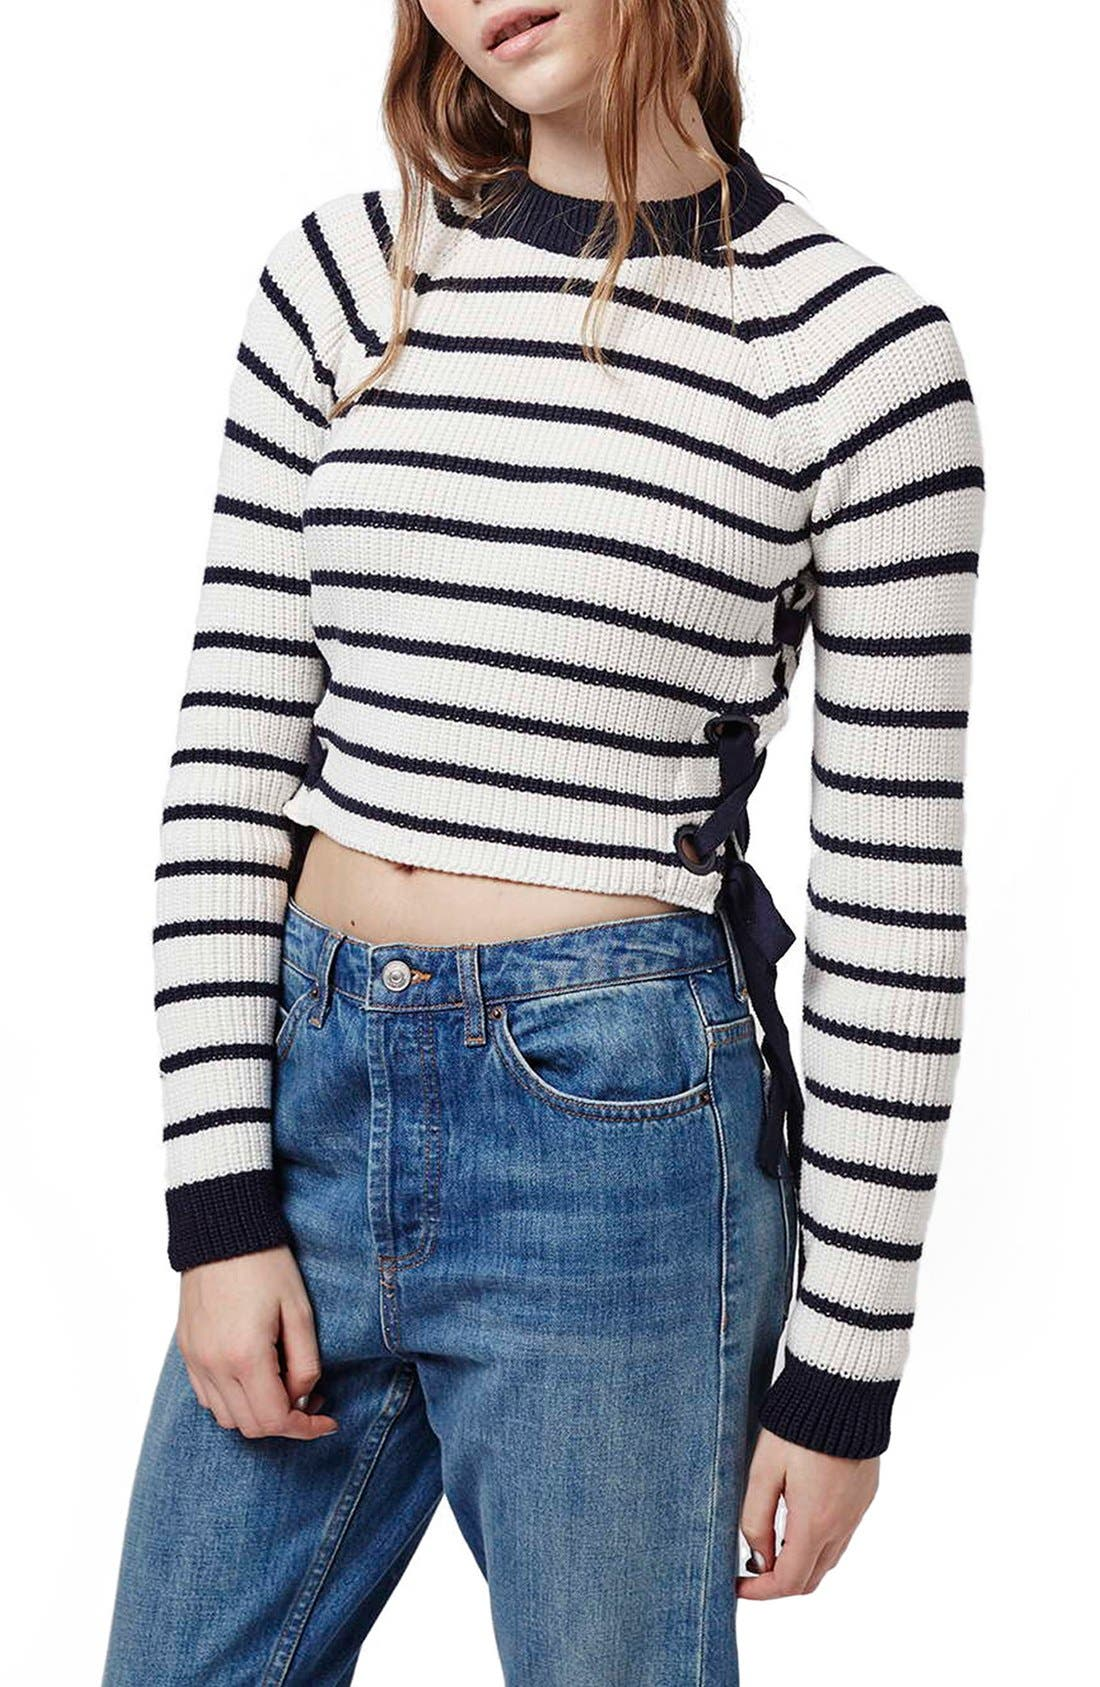 Alternate Image 1 Selected - Topshop Lace-Up Crop Sweater